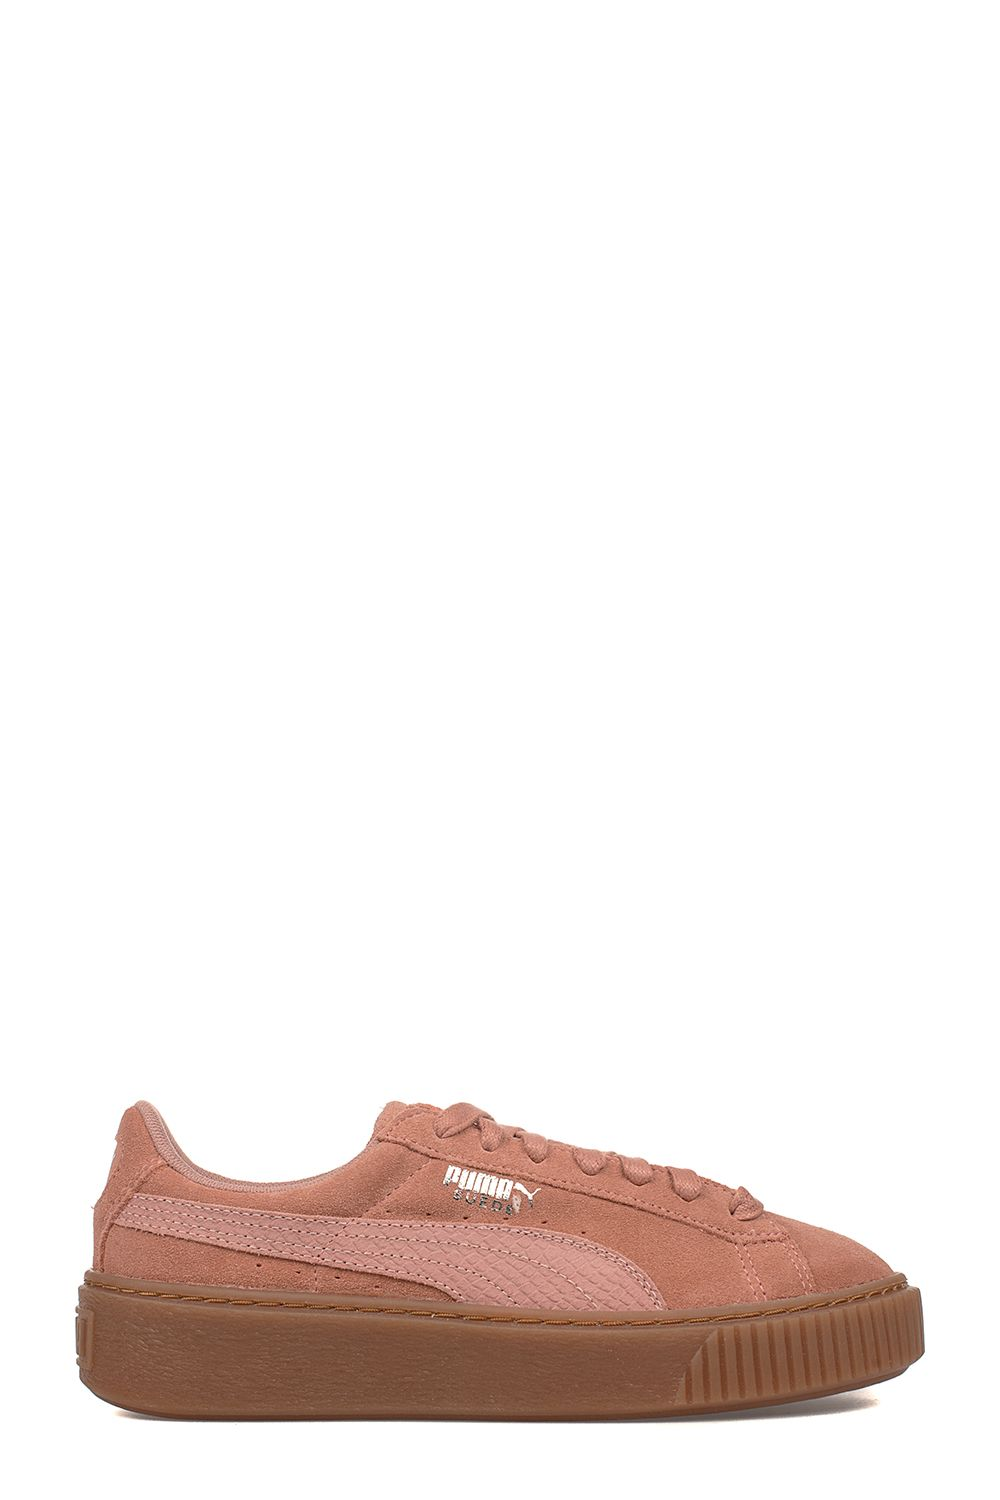 Antique Pink Platform Suede Sneakers